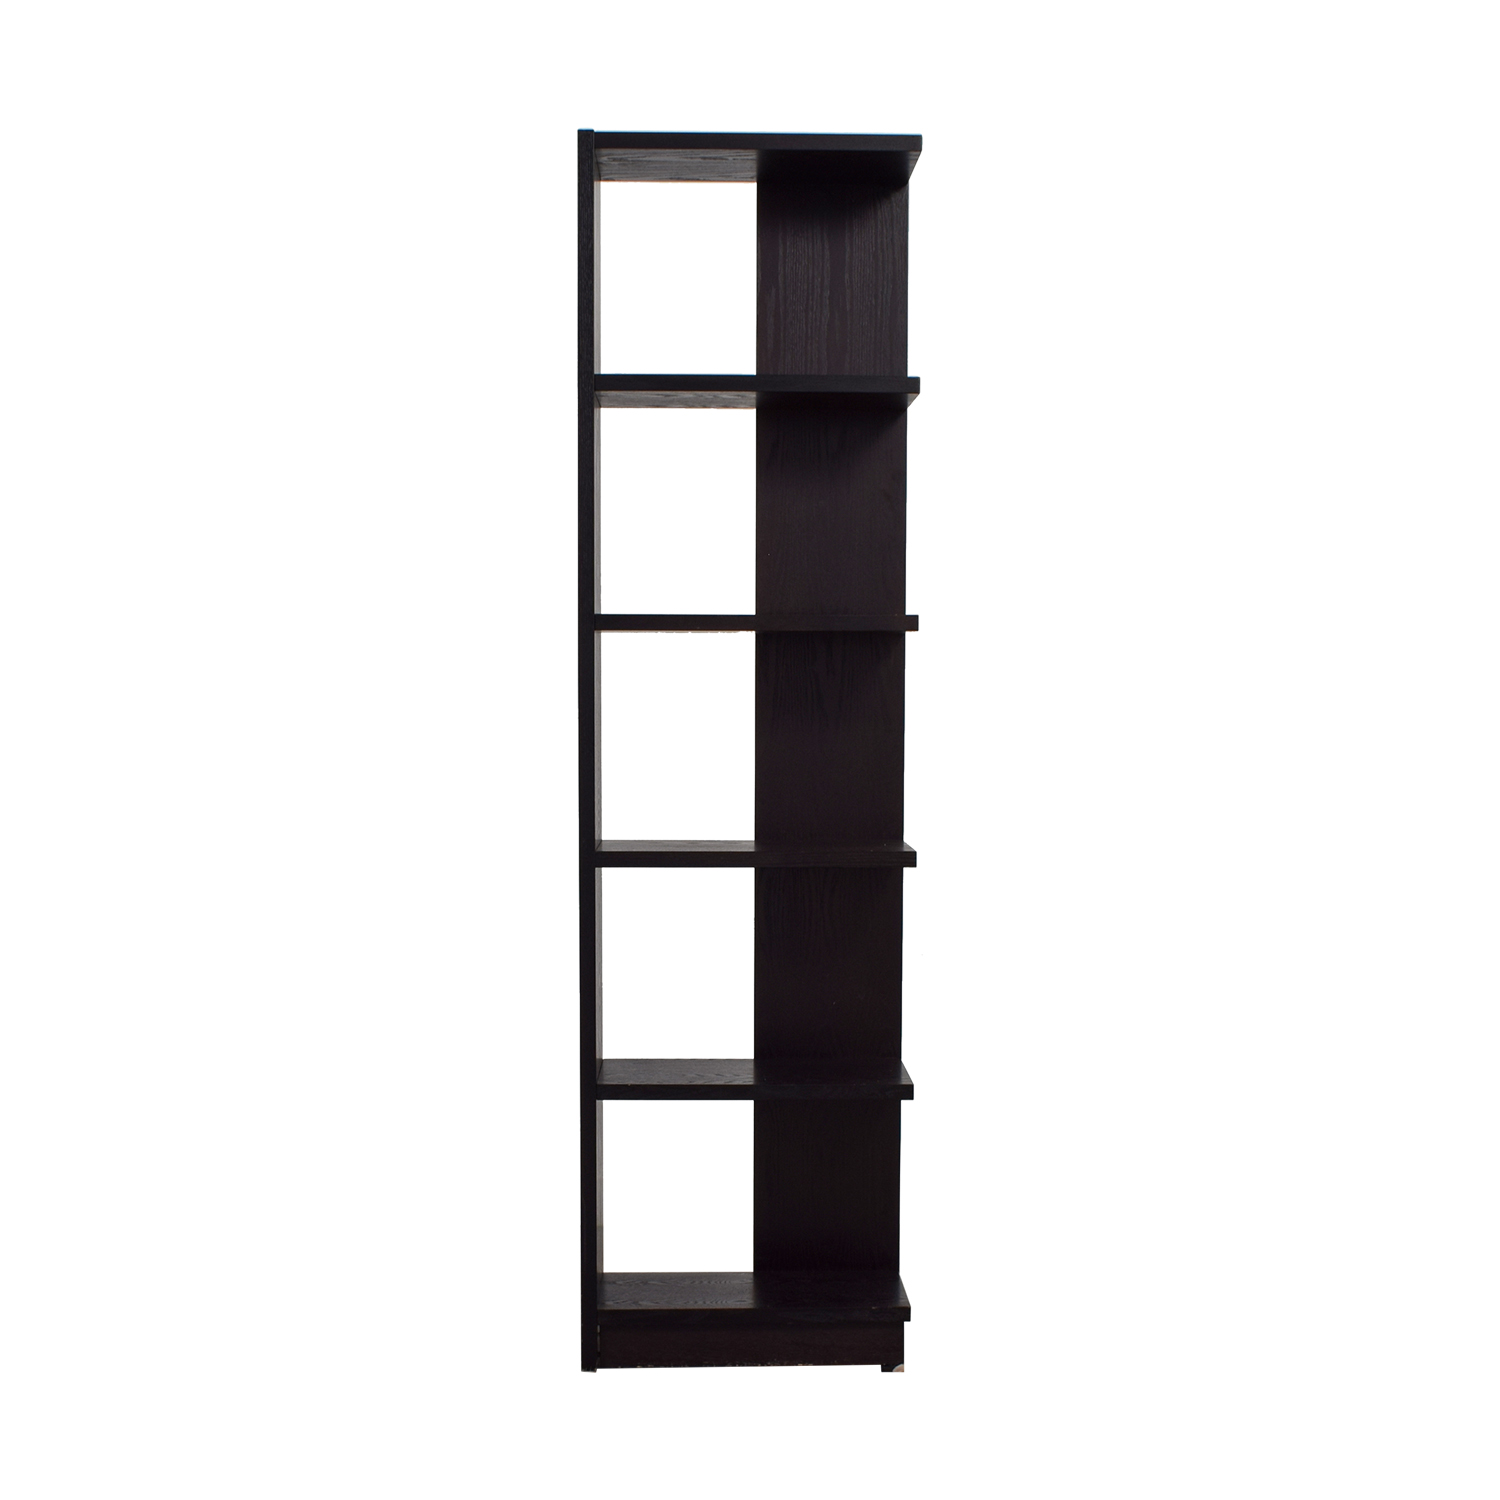 shop Crate & Barrel Asymmetric Bookcase Crate & Barrel